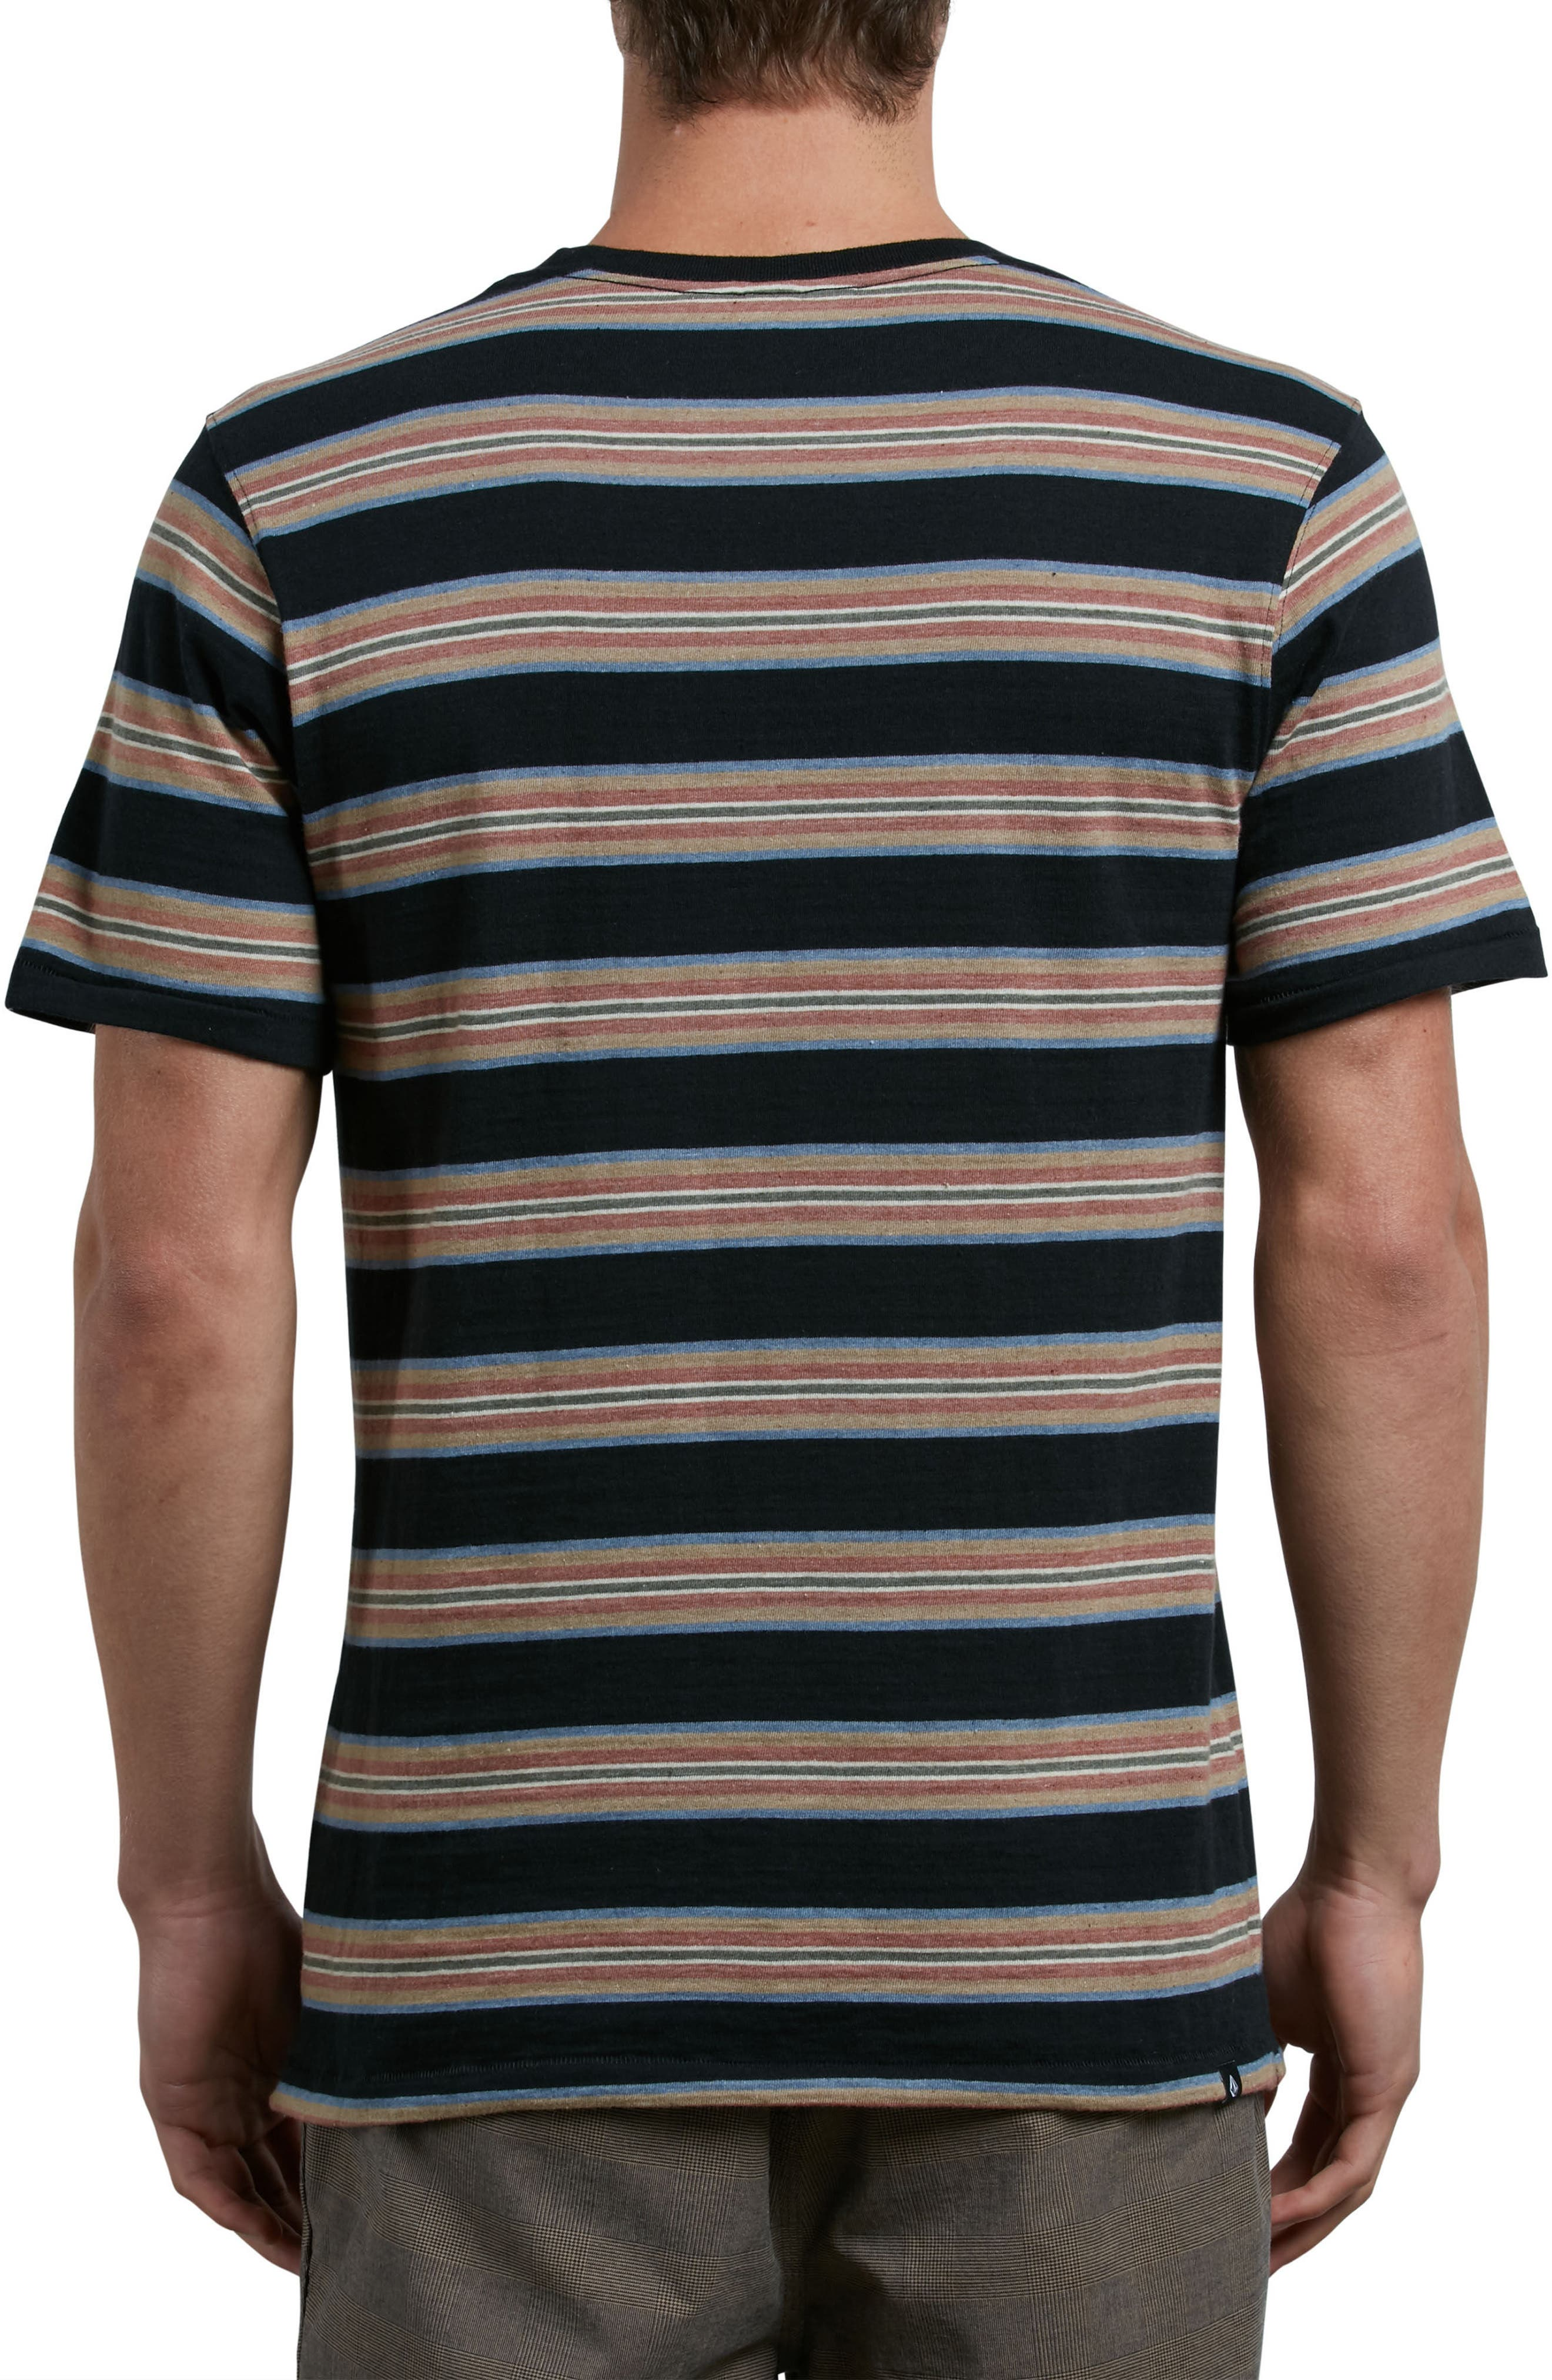 Belfast Stripe Pocket T-Shirt,                             Alternate thumbnail 2, color,                             001